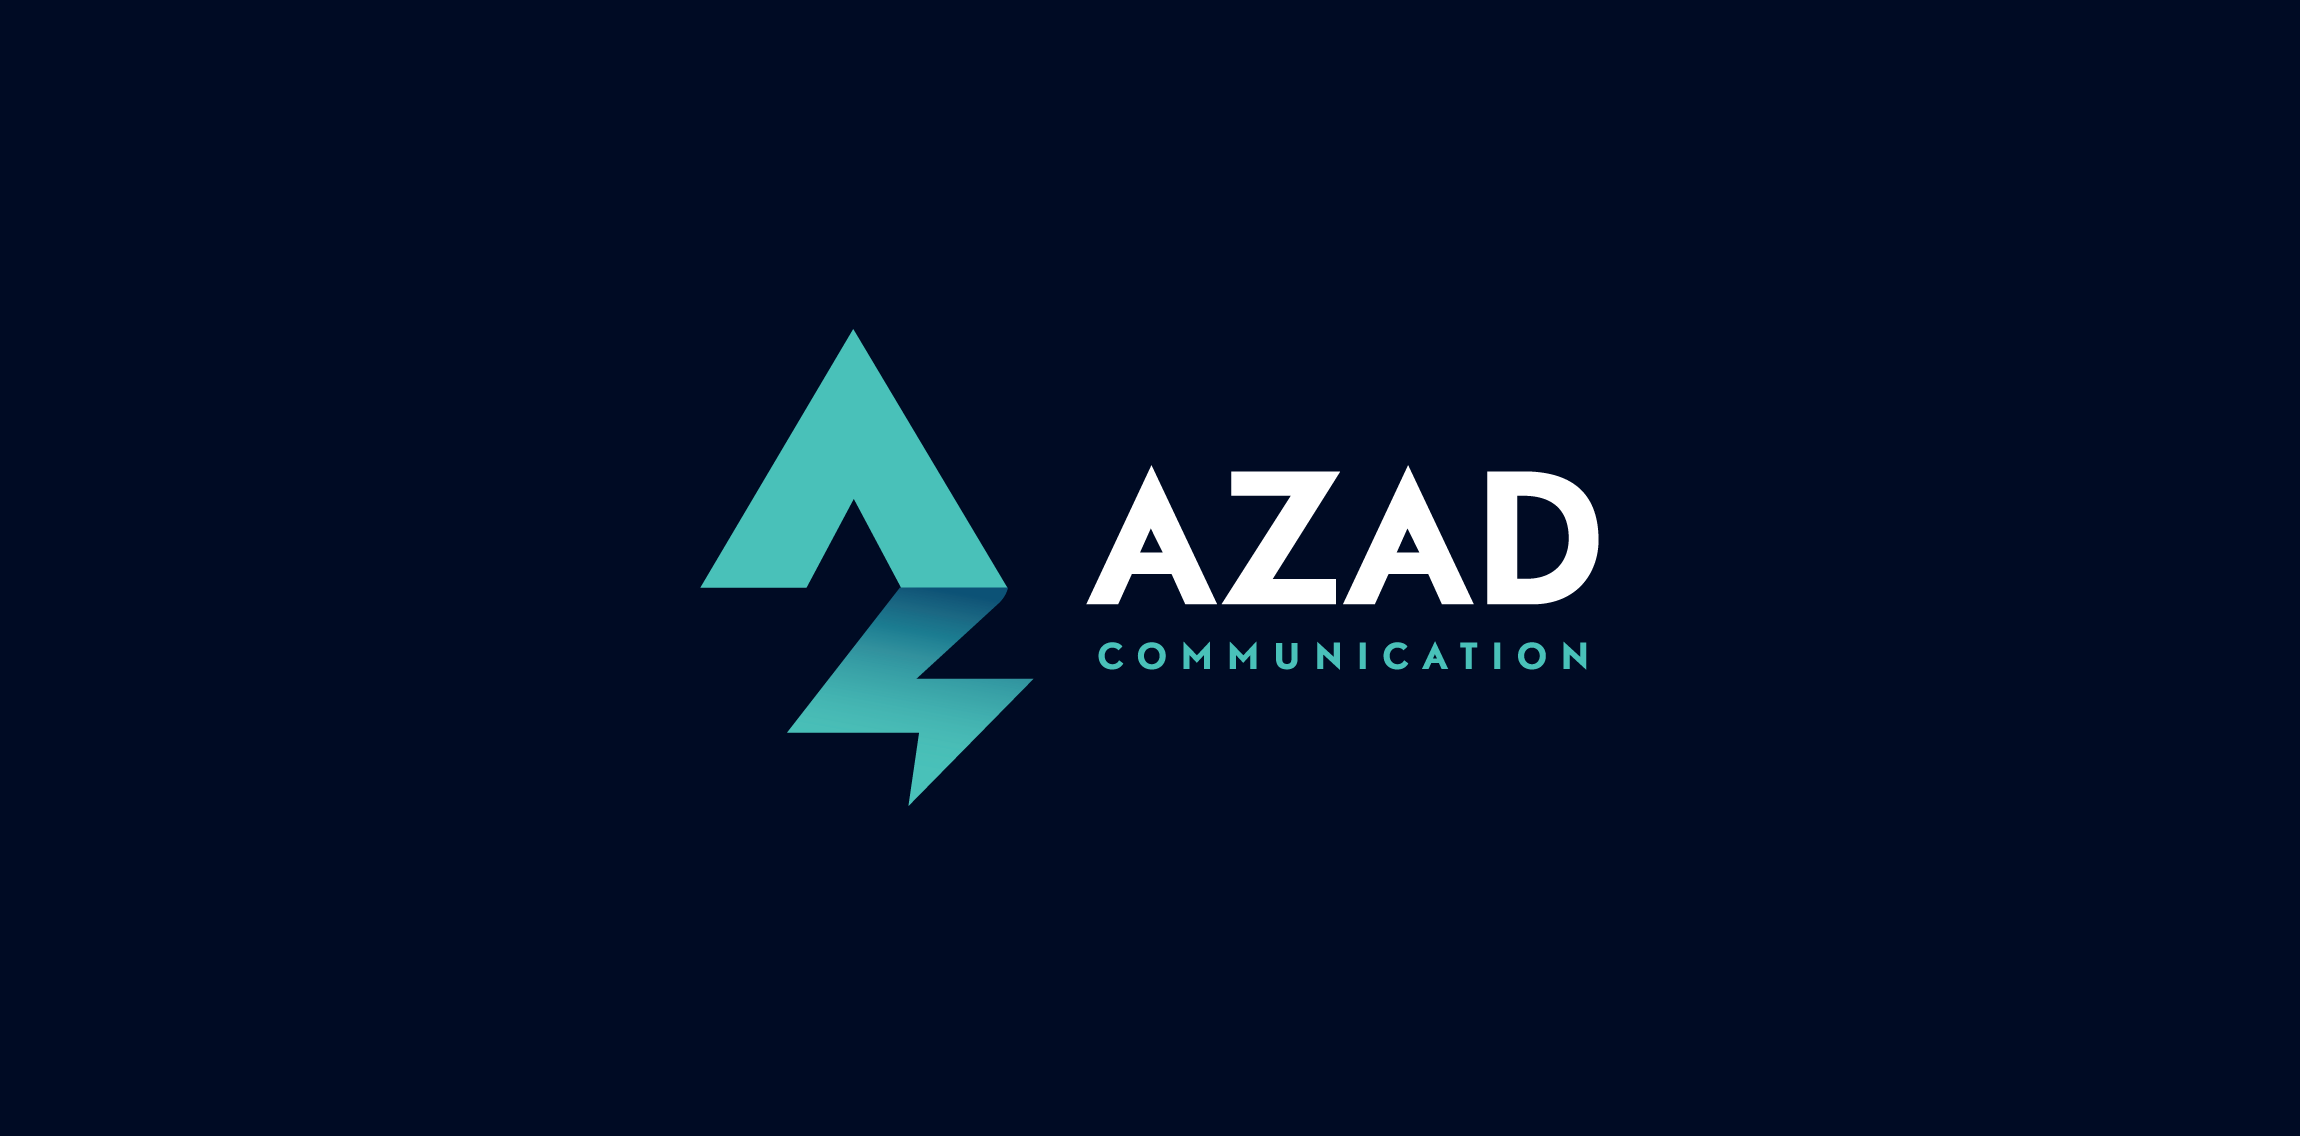 Azad Communication